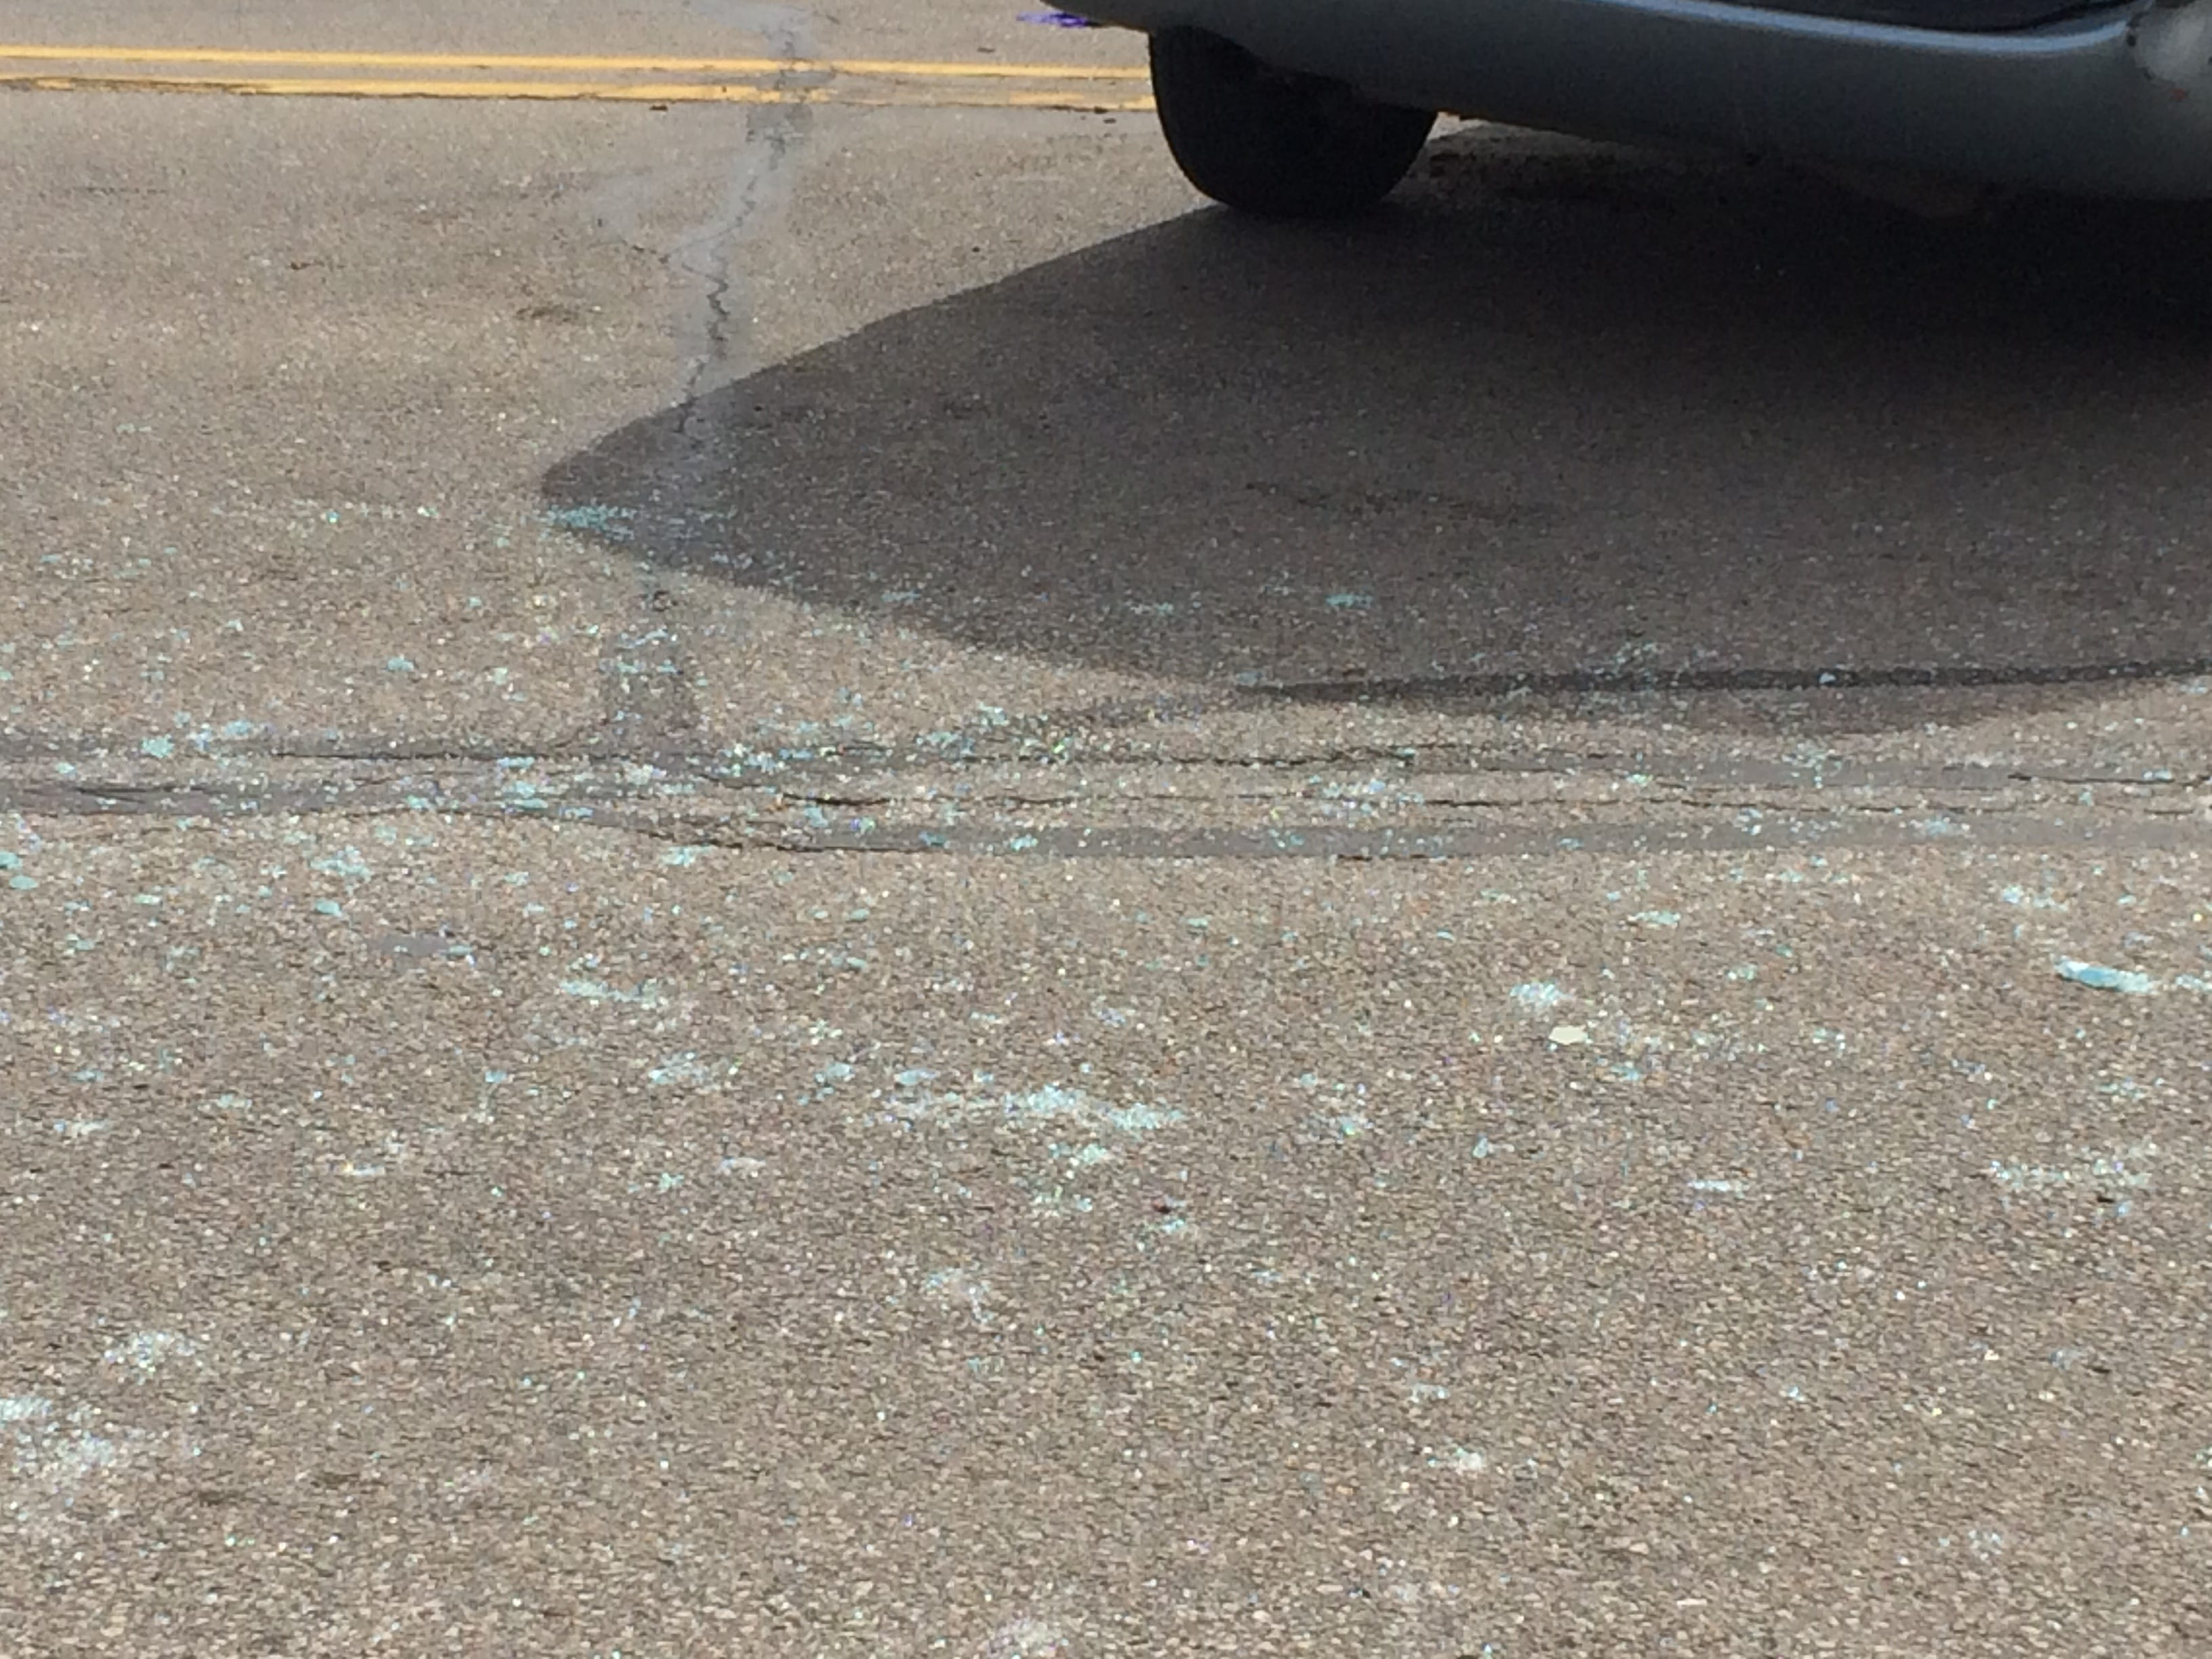 Broken glass littered the westbound lanes of National Road West on Tuesday after an accident in the 3900 block.